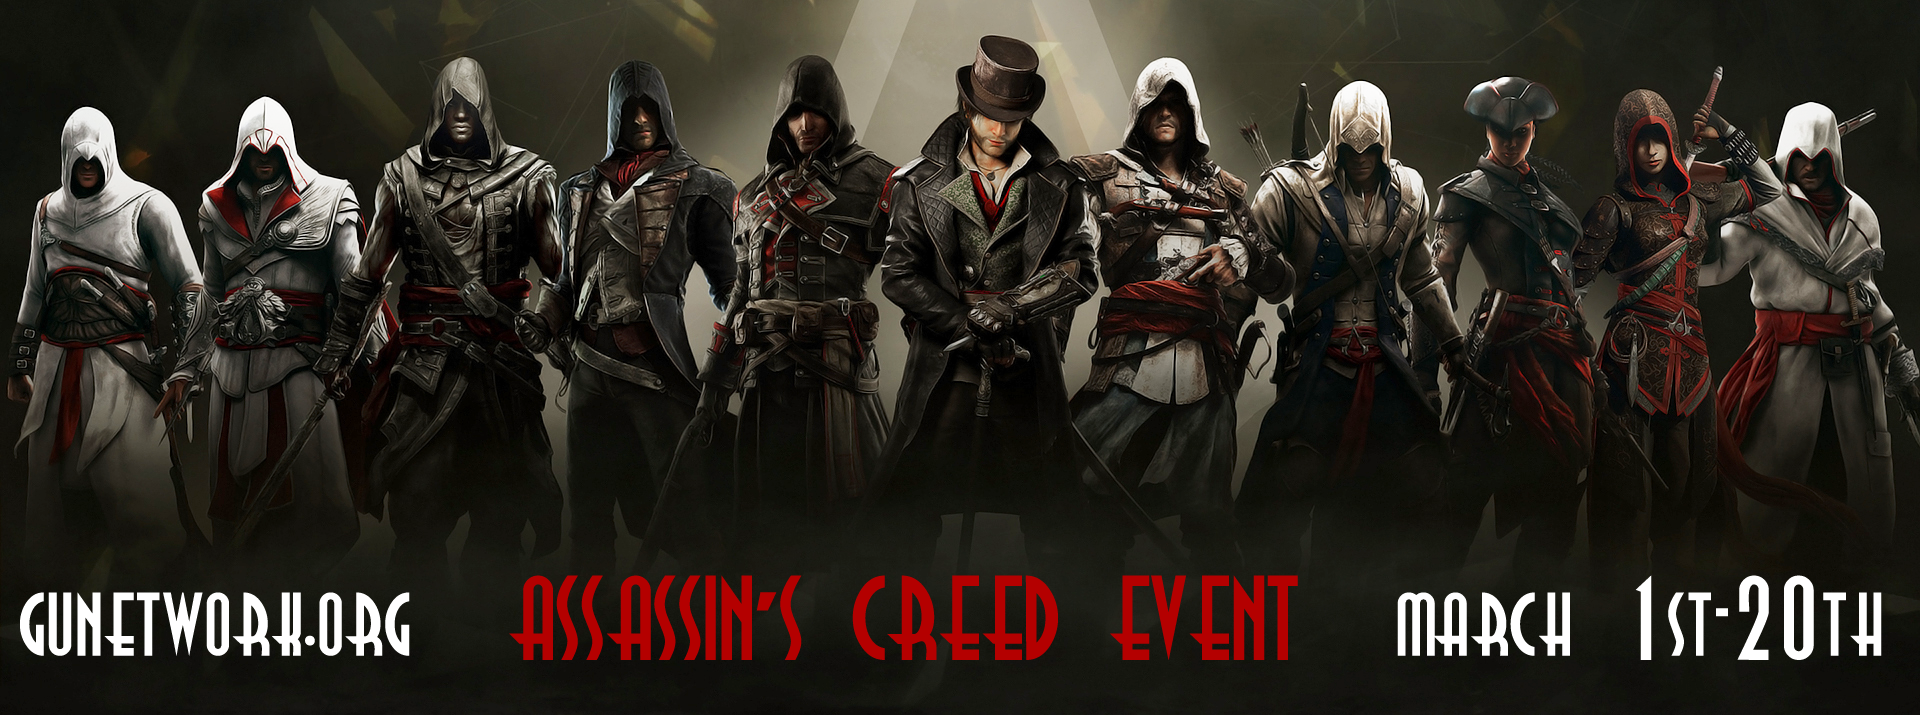 Assassin's Creed Event March 2017 + 50k members! FQGxb3wt